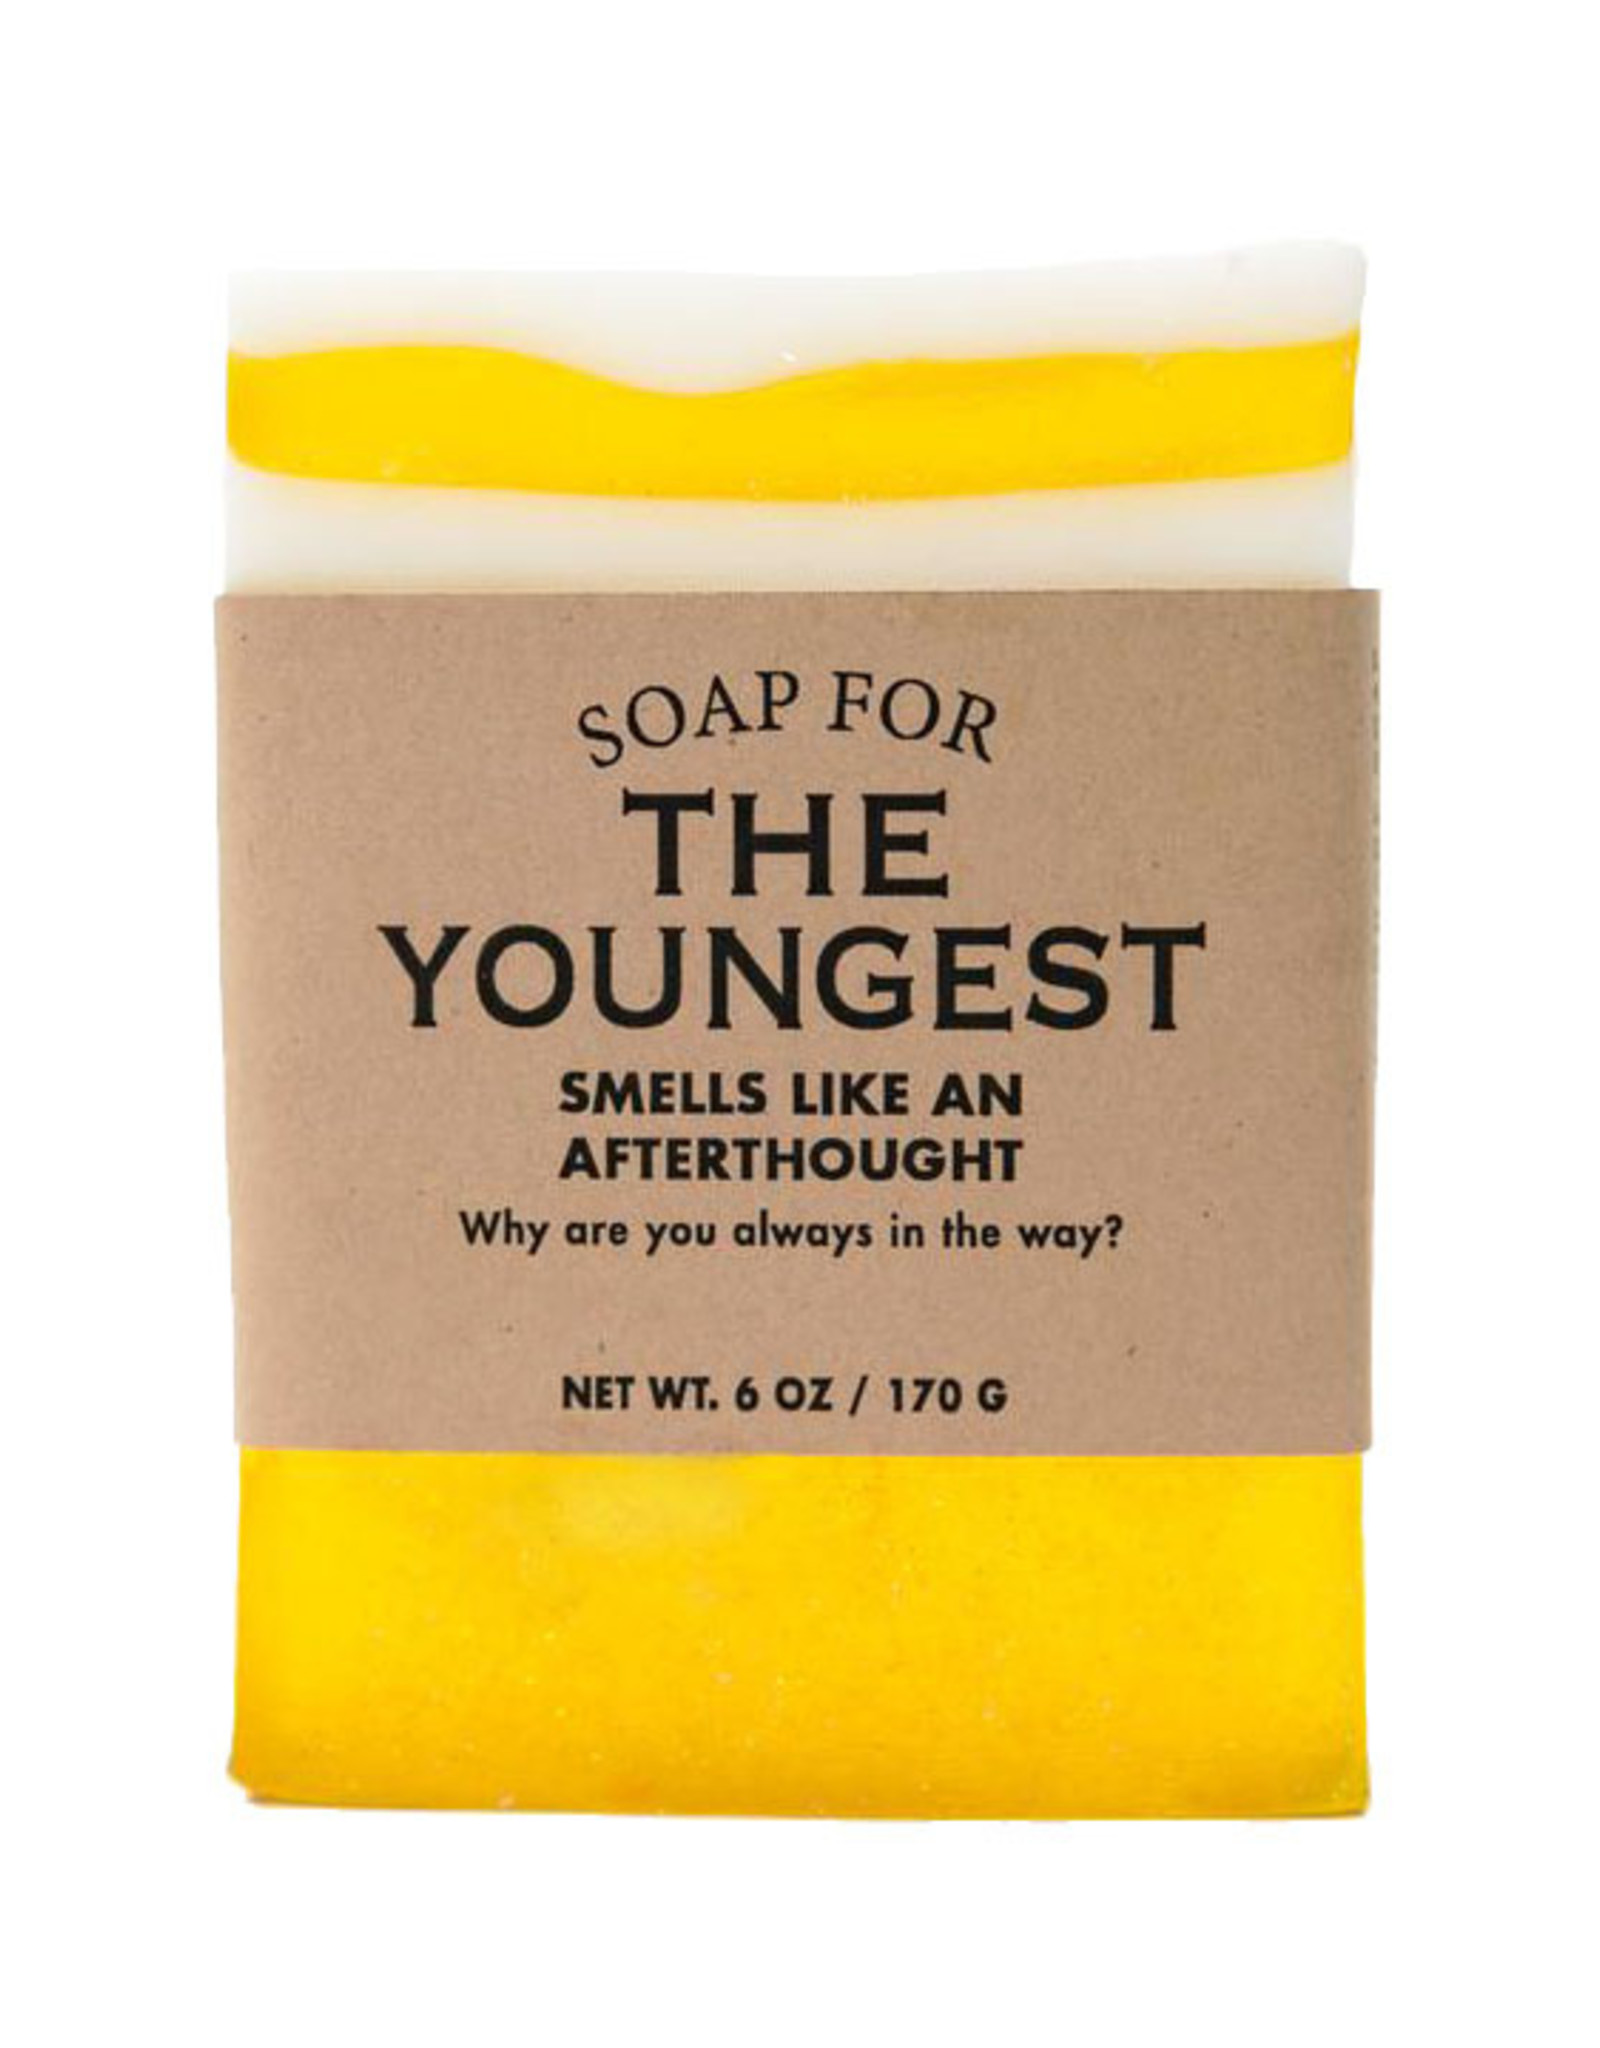 A Soap for The Youngest